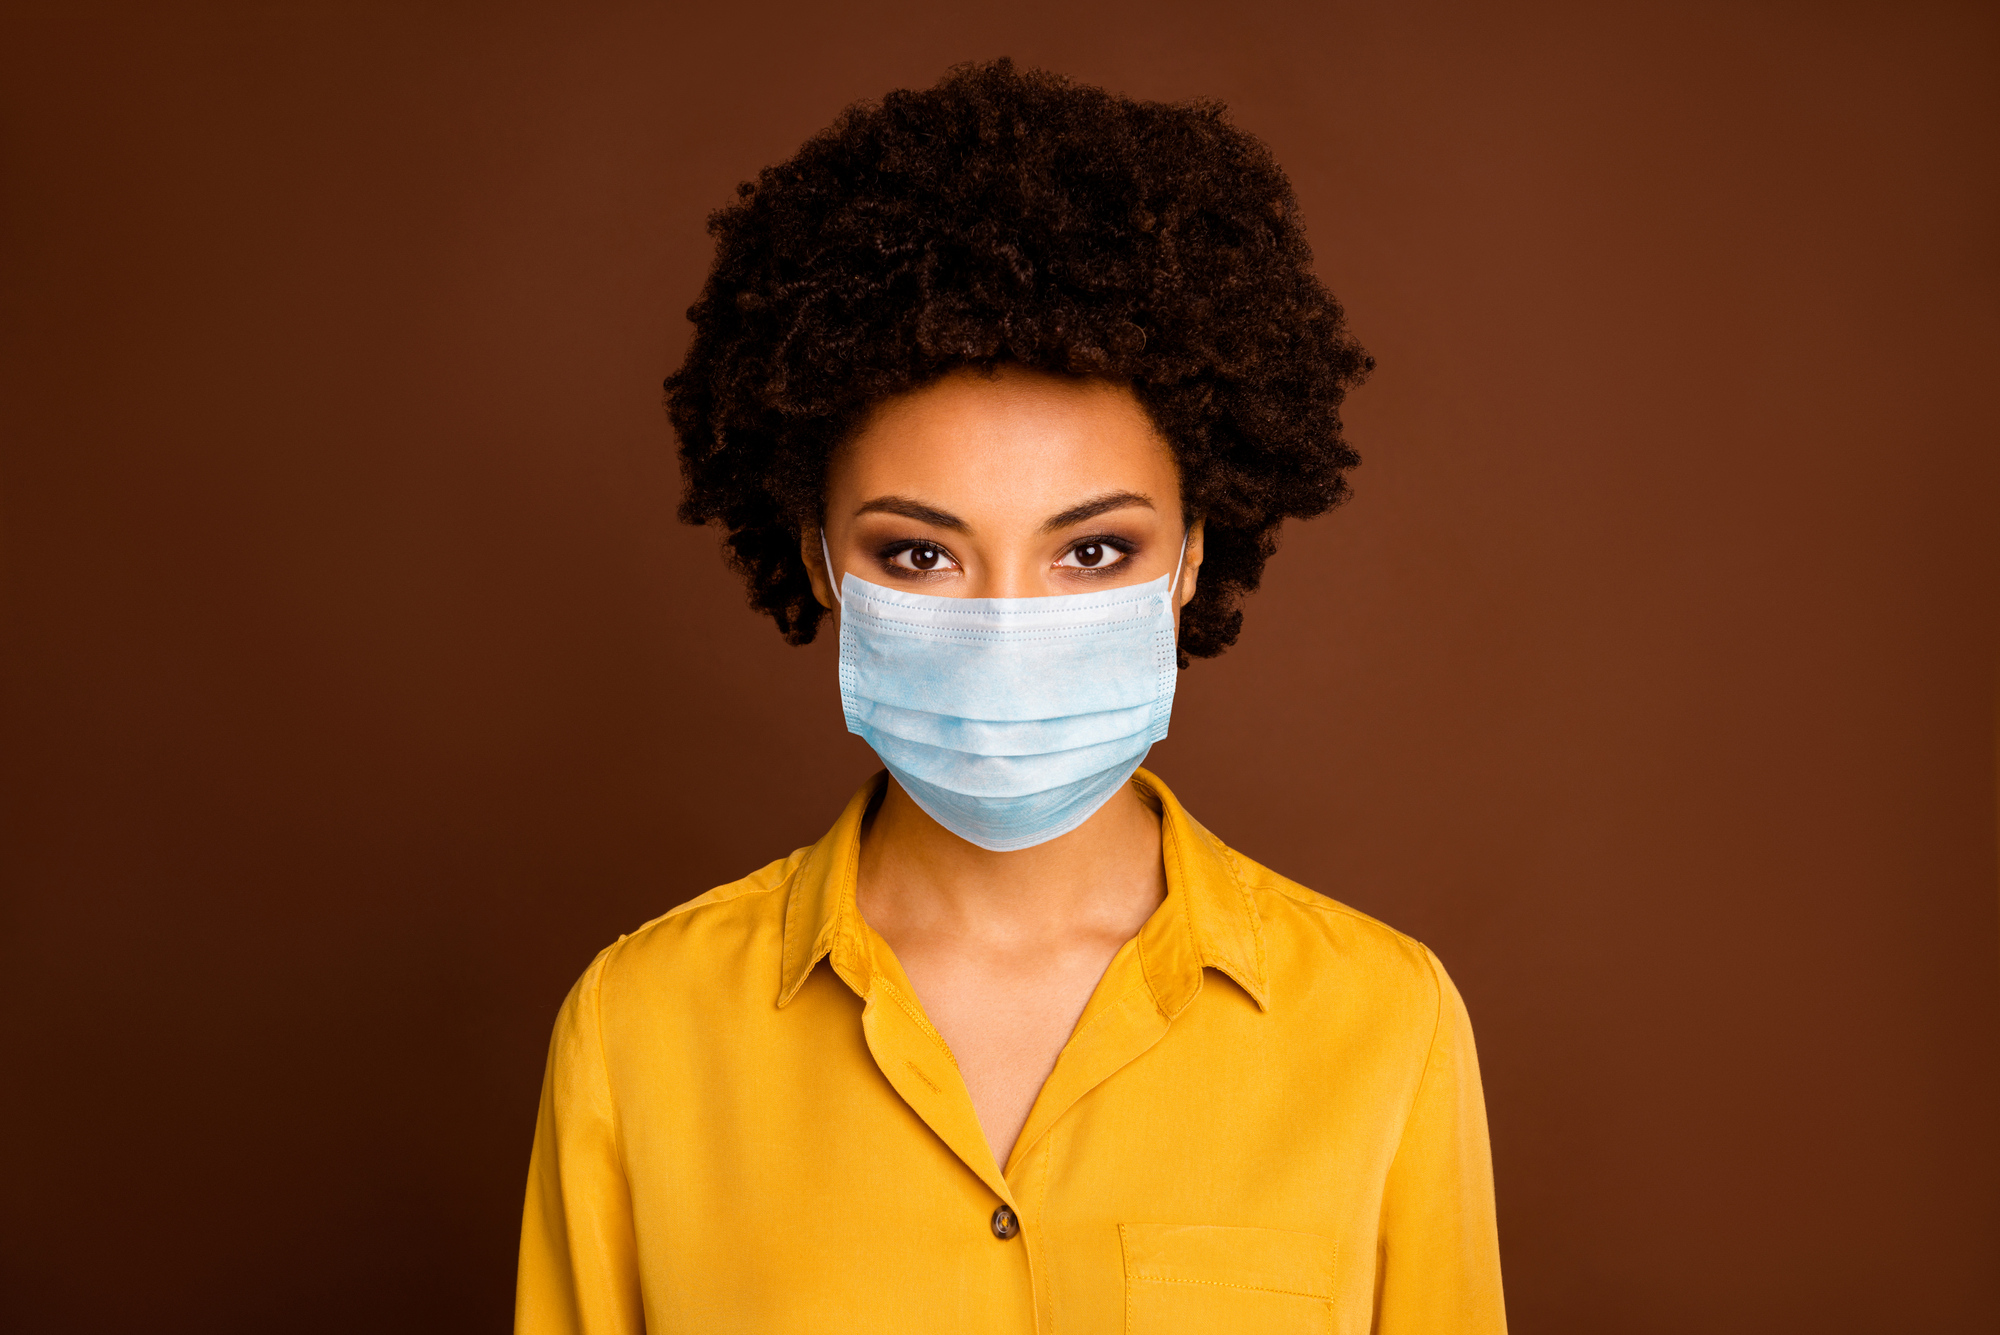 Close-up portrait of pretty dark skin wavy-haired lady in yellow shirt gauze mask concept sickness illness disease life sars cov ncov prevention isolated